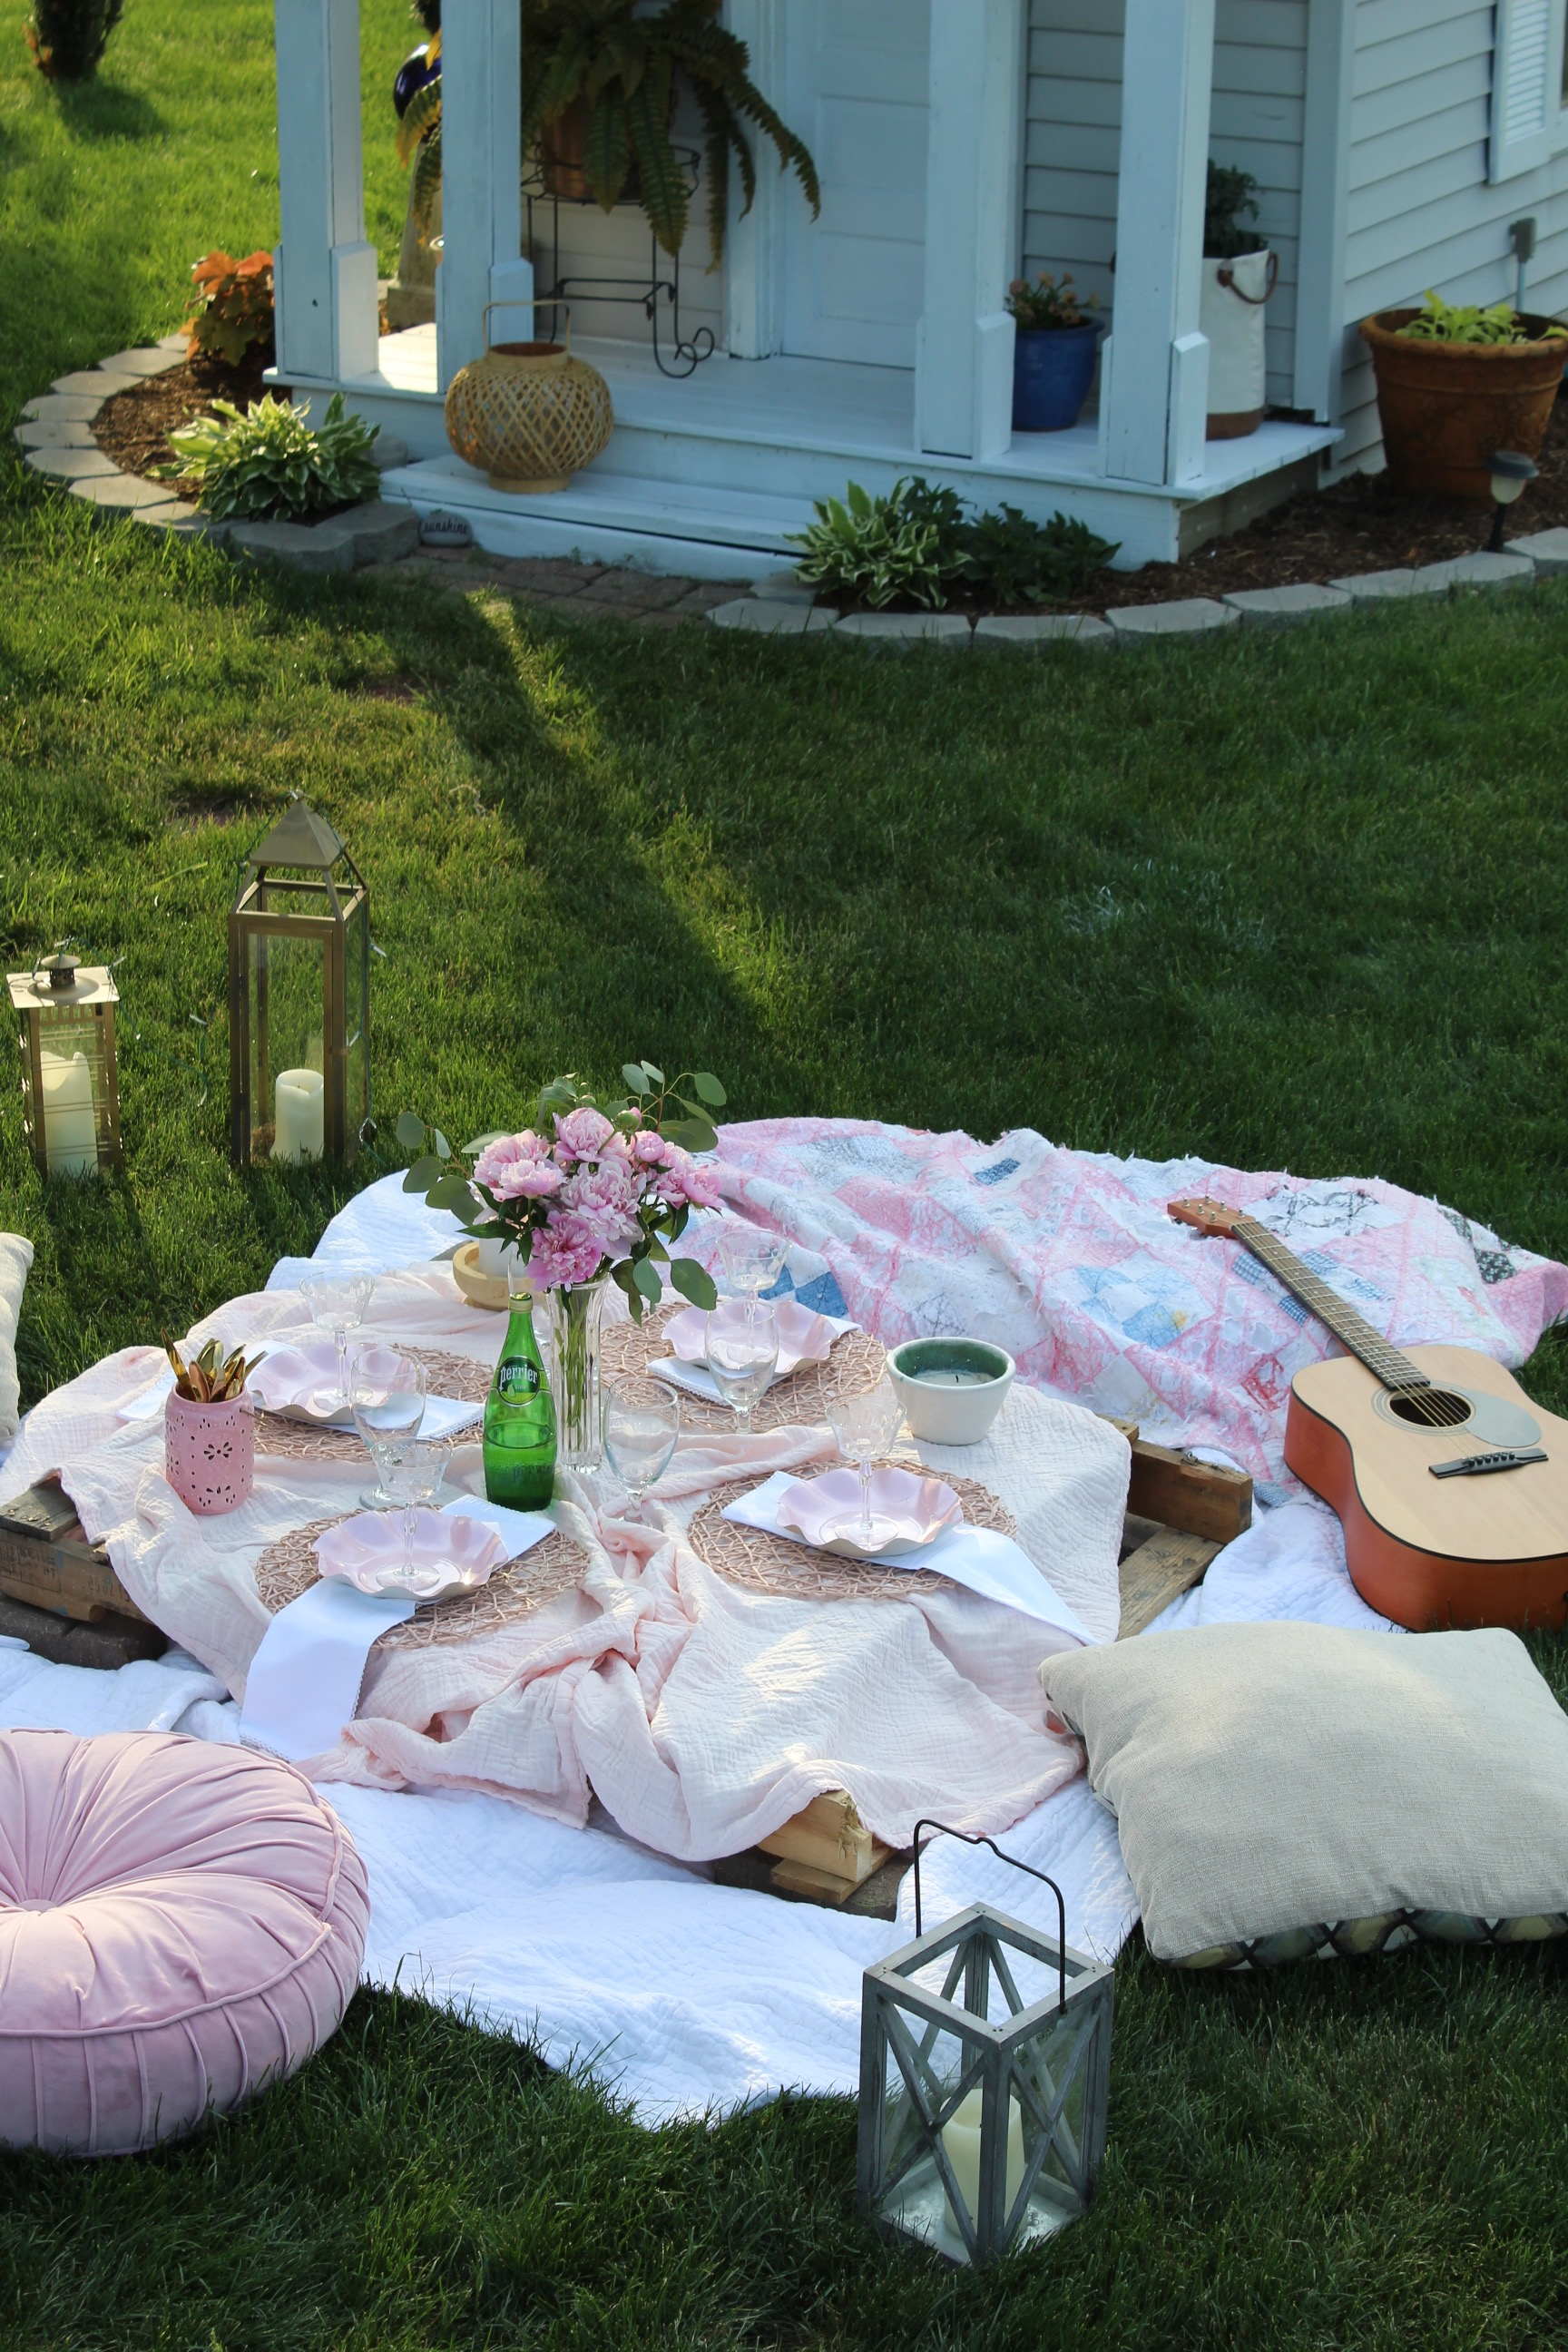 Spontaneous backyard picnic